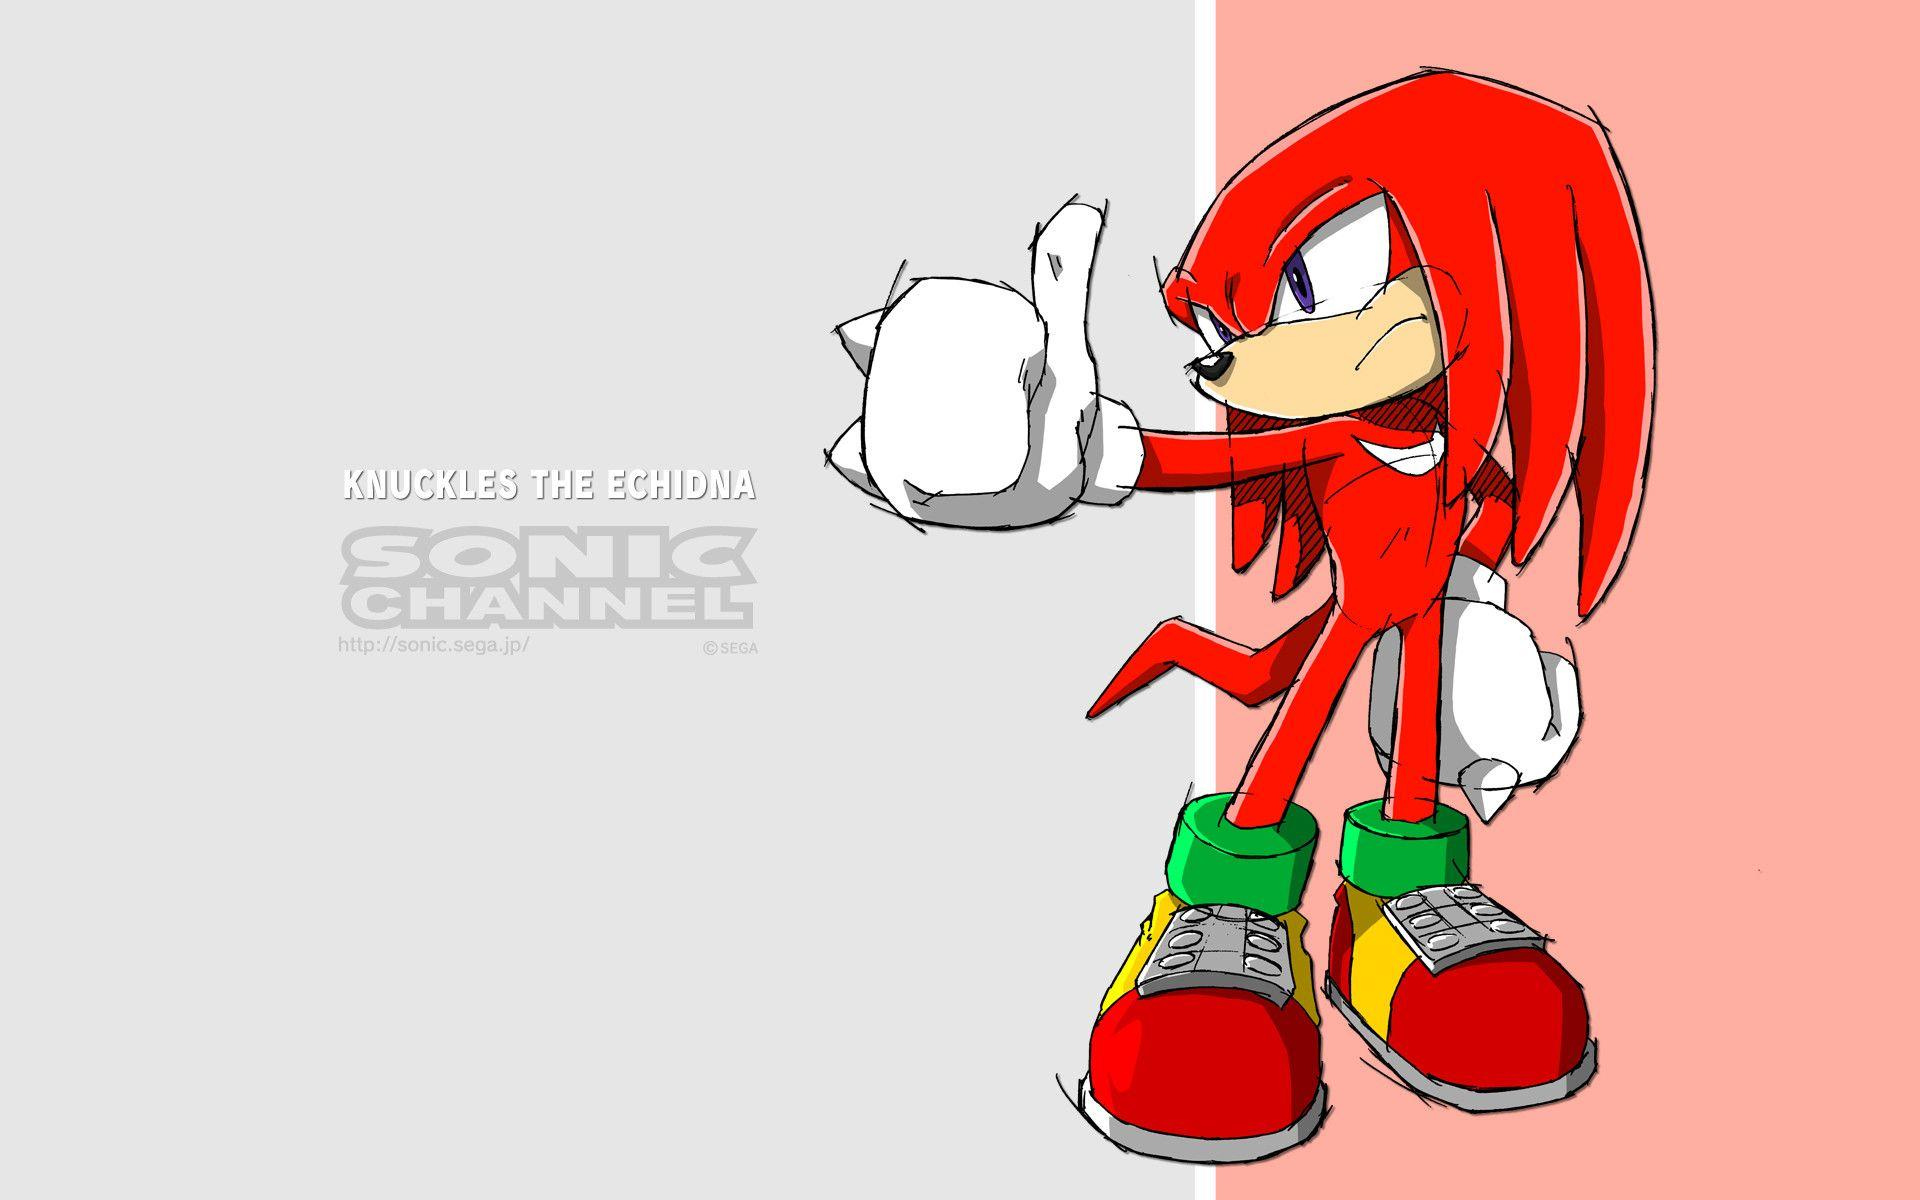 Knuckles The Echidna Sonic Tail Wallpapers Wallpaper Cave